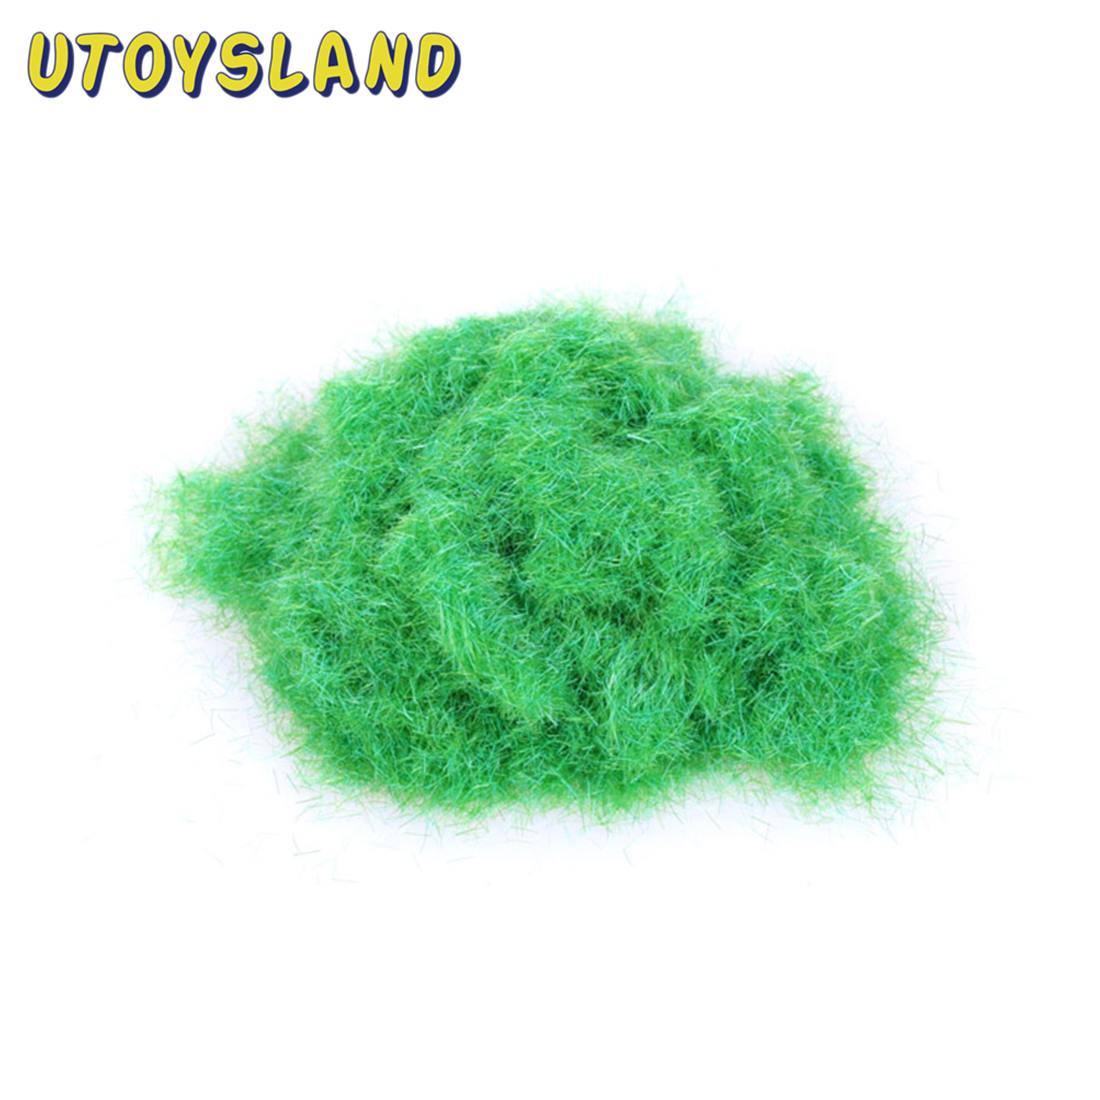 30g Artificial Grass Powder DIY Railway Model Sand Table Model Decor Micro Fairy Garden Landscape Decor DIY Accessories 1Bag